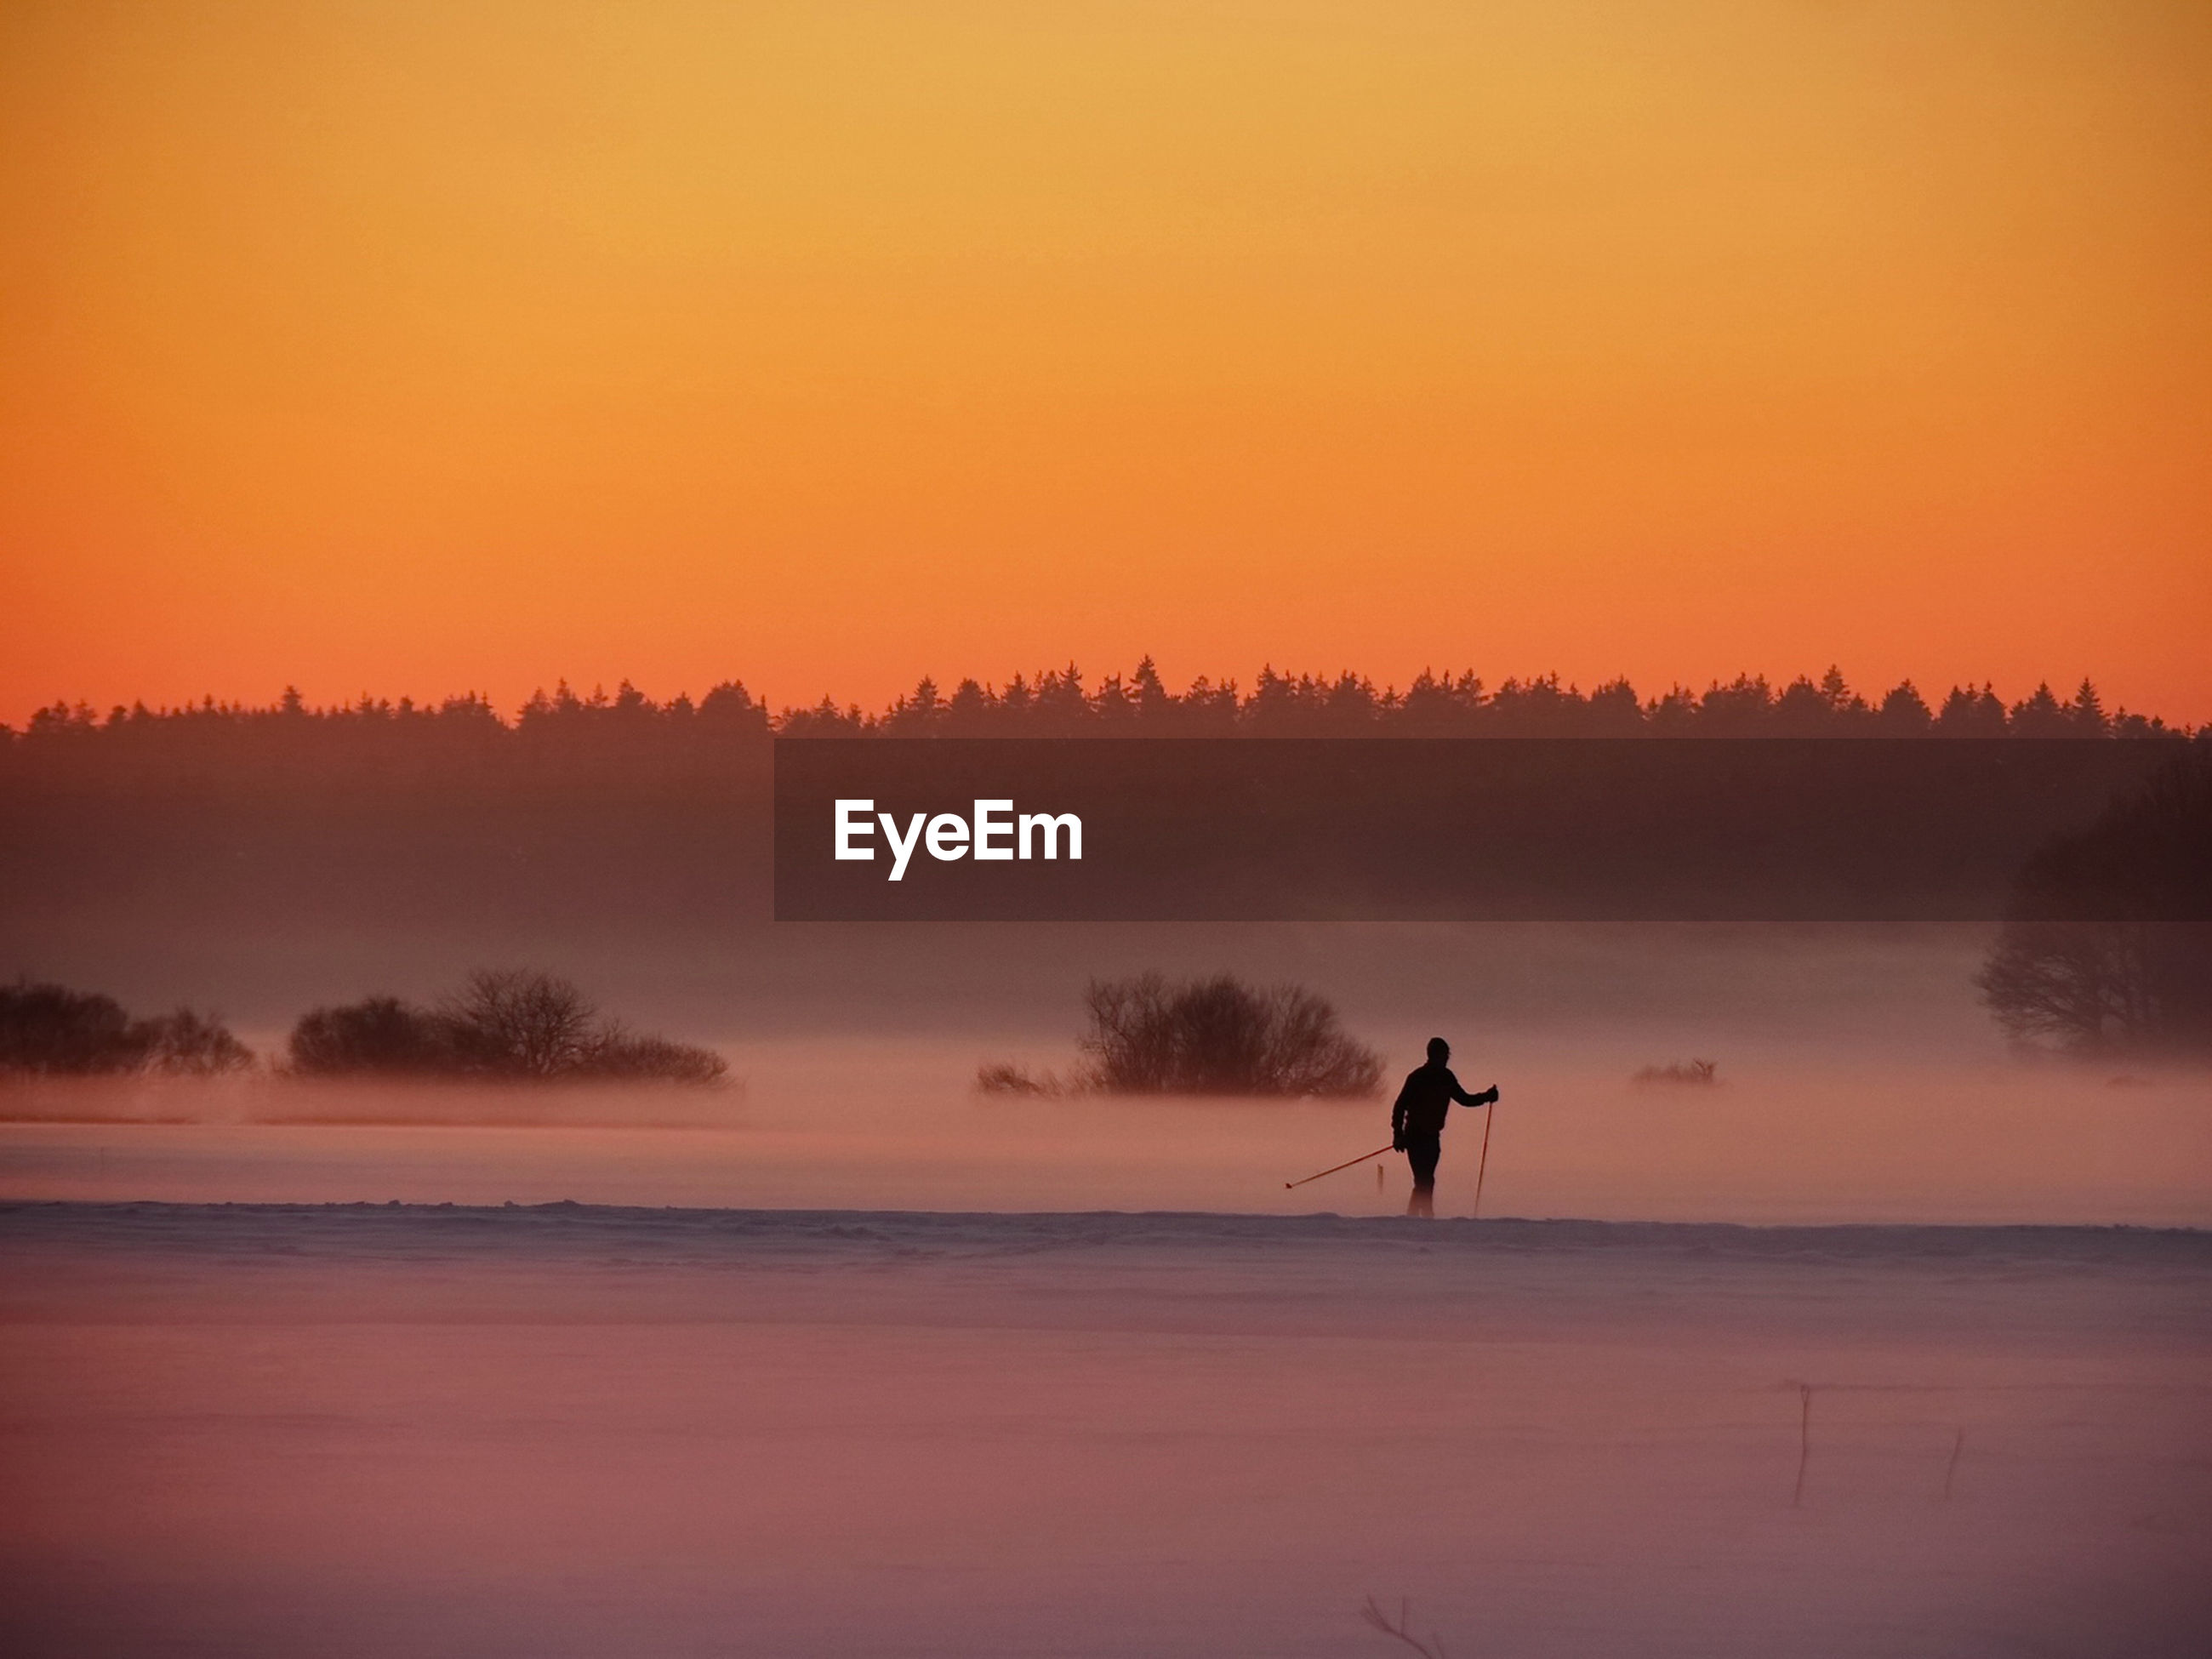 Silhouette man skiing on field against clear orange sky during sunset